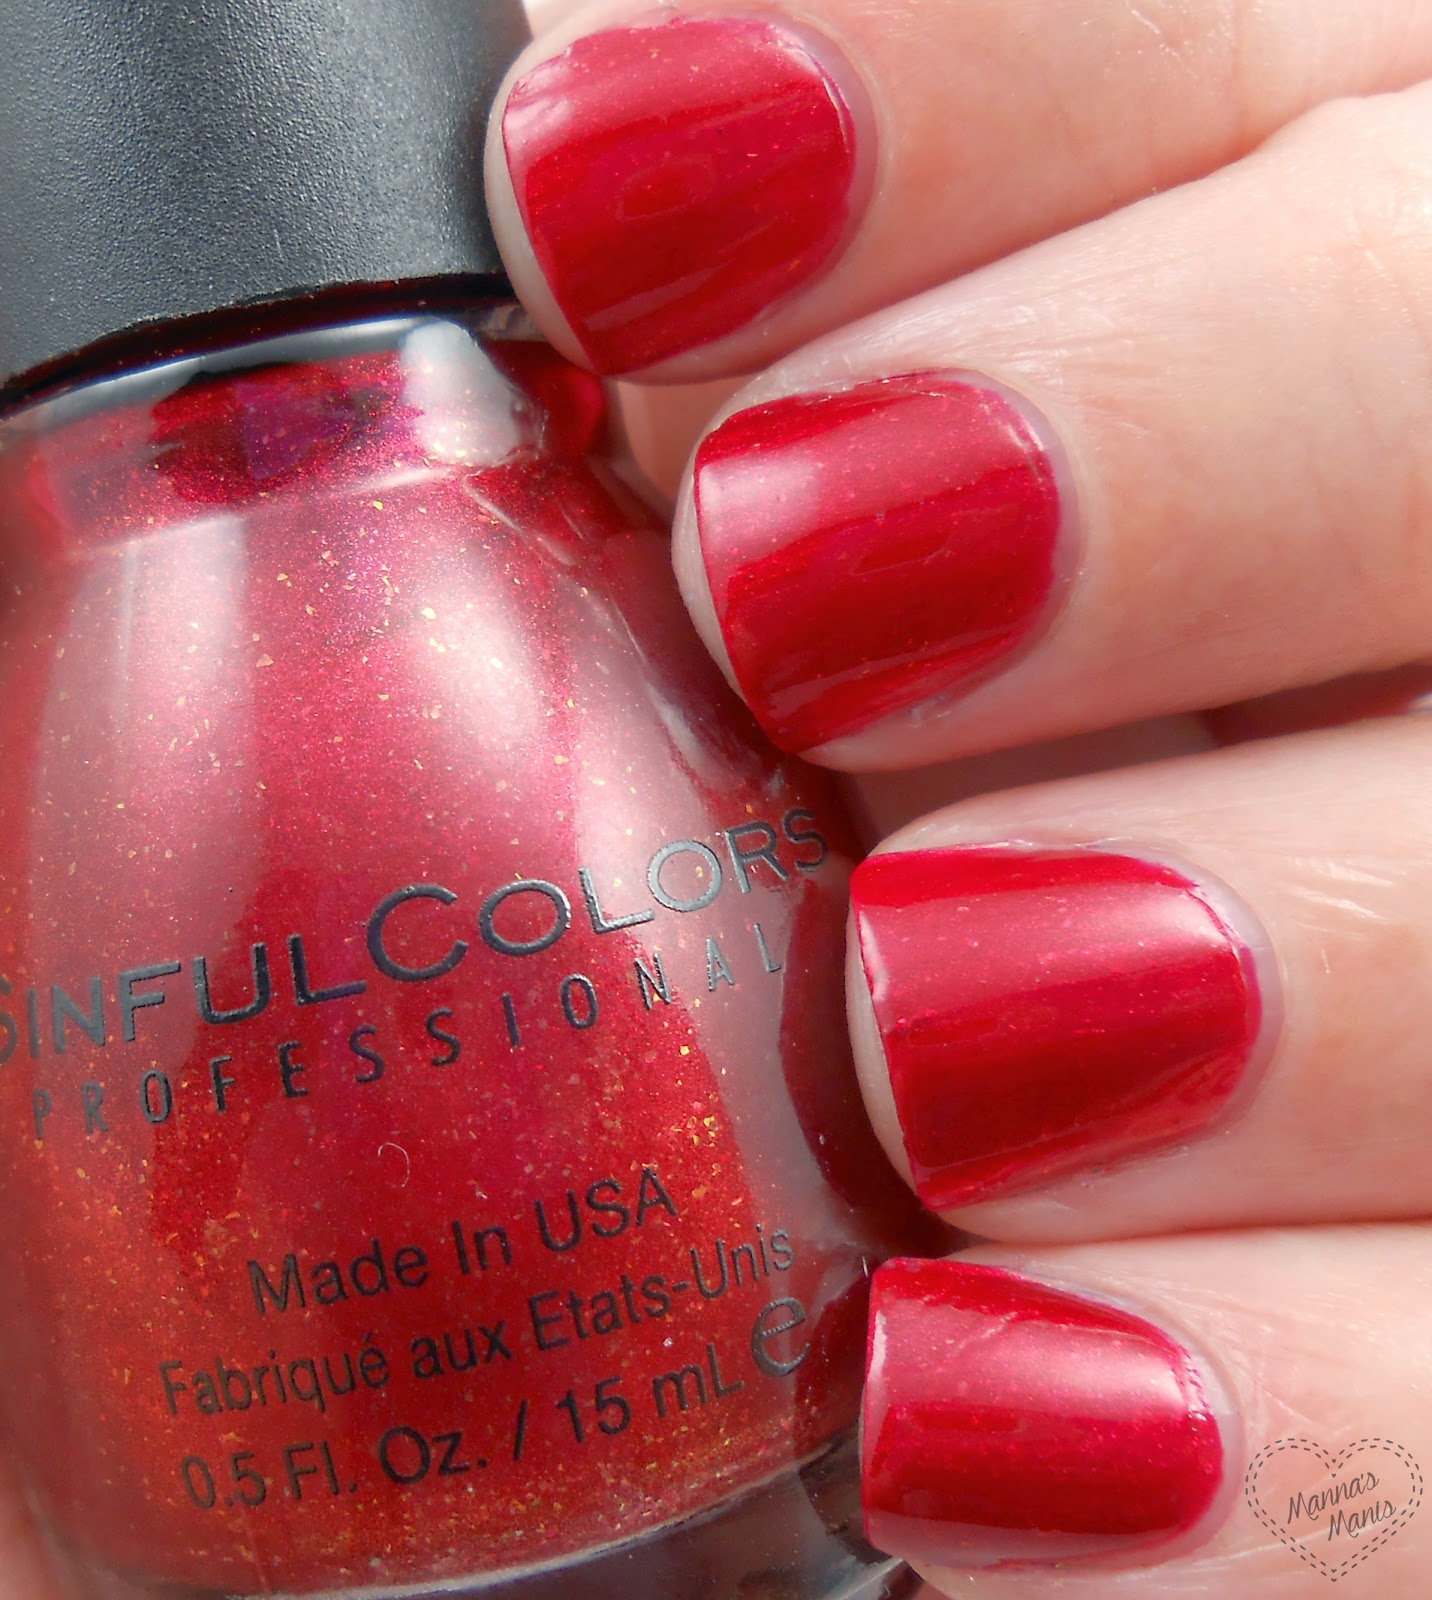 sinful colors sugar sugar, a red shimmer nail polish